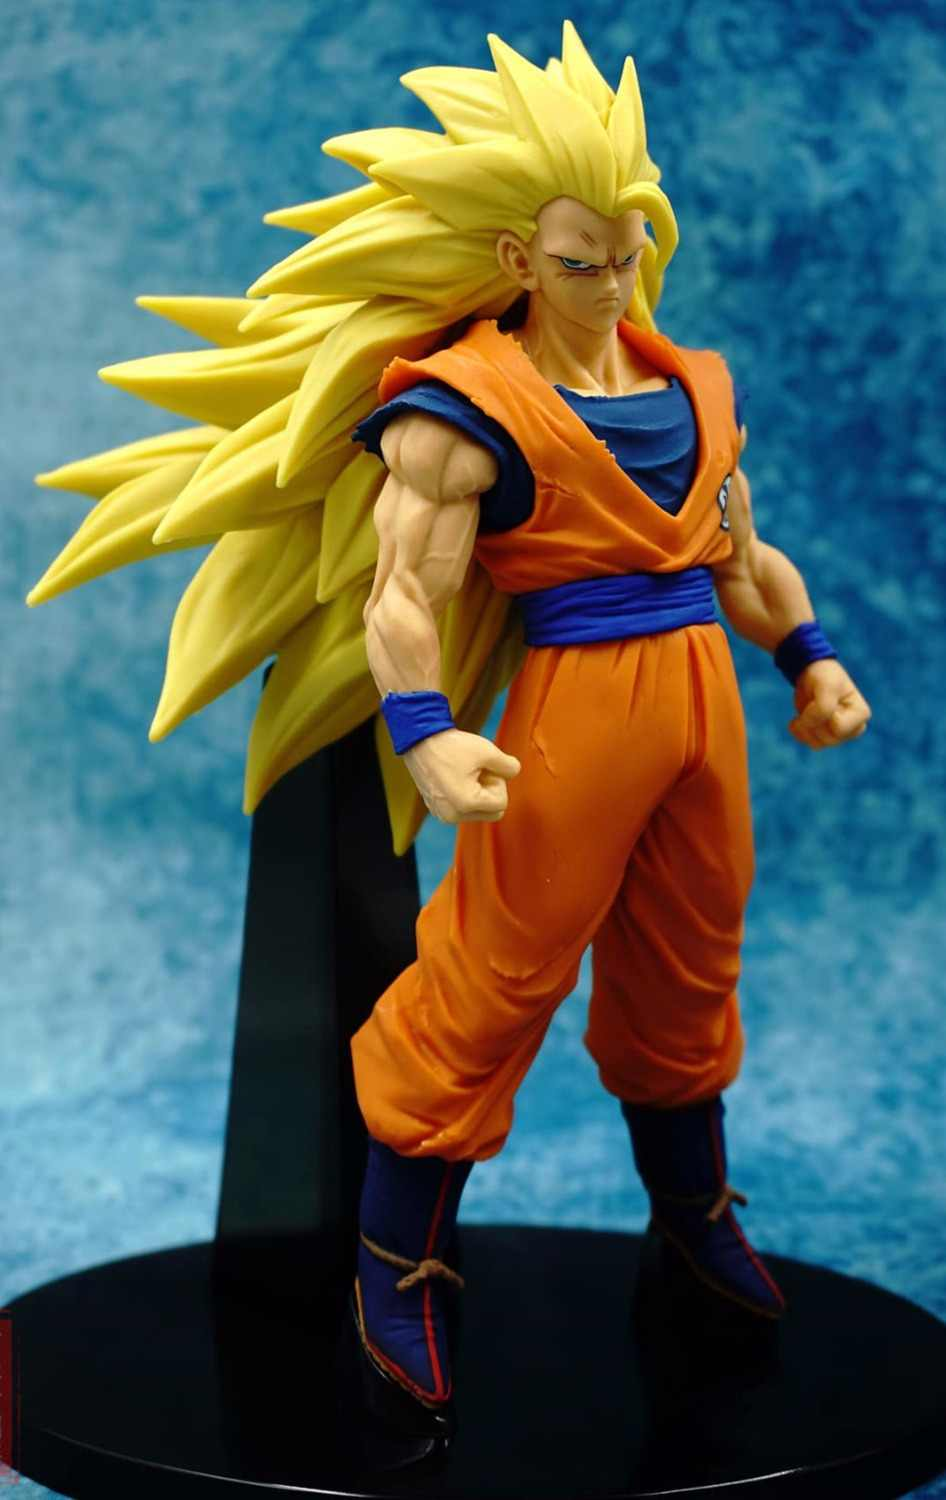 15cm Dragon Ball Z Son Goku Anime Action Figure PVC New Collection figures toys Collection for Christmas gift